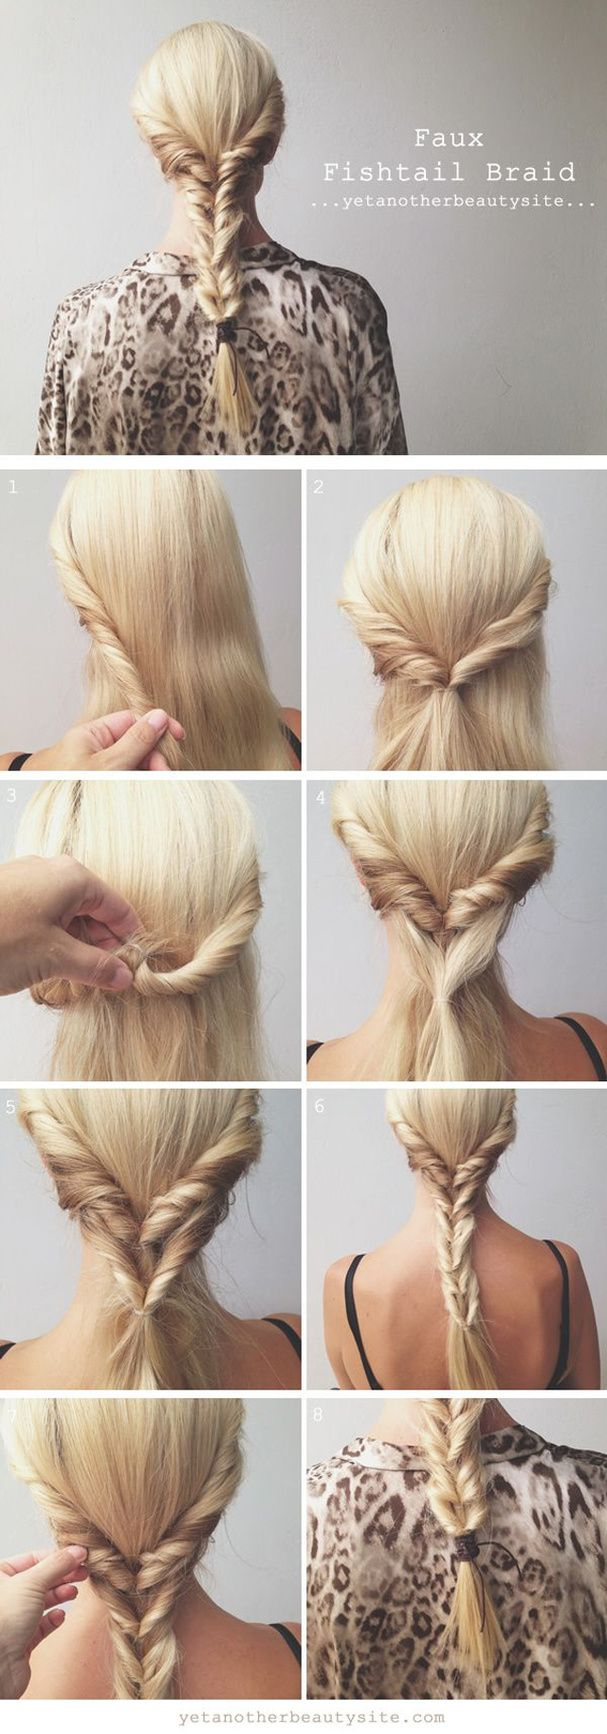 La fausse fishtail braid